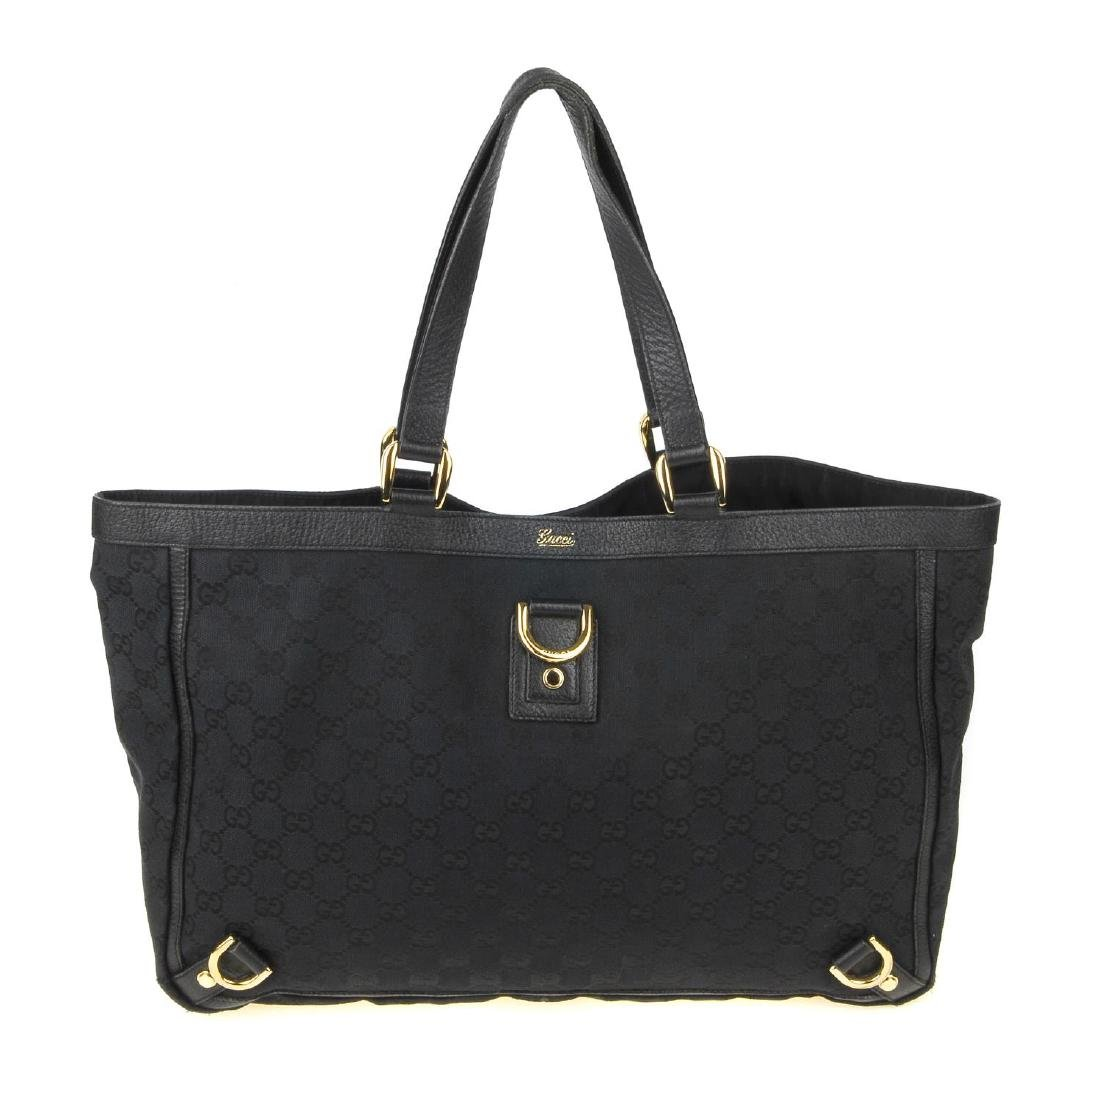 GUCCI - a black Abbey handbag. Crafted from black